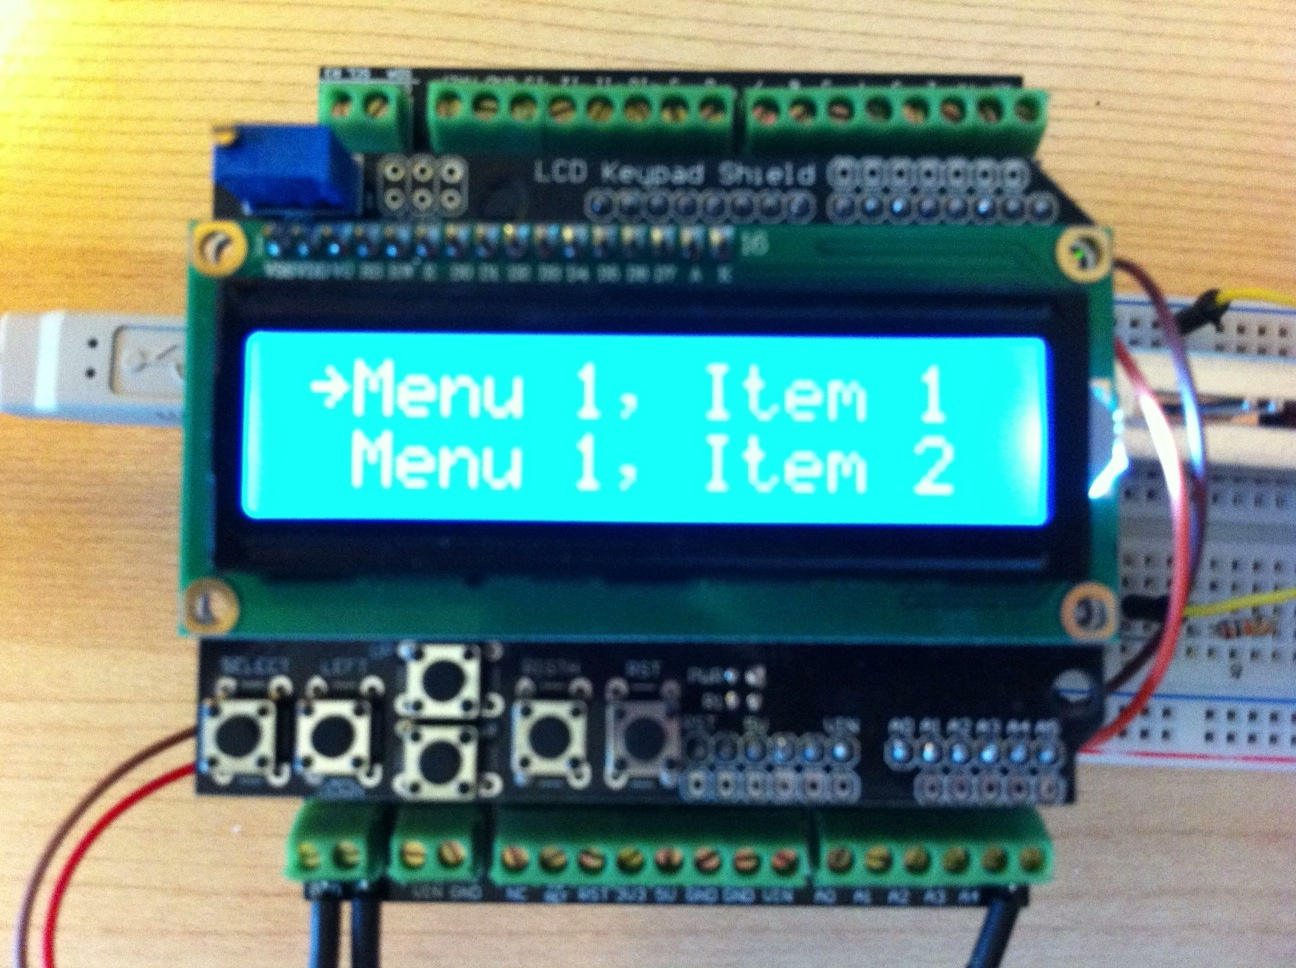 The making of a maker simple vertical menu for arduino